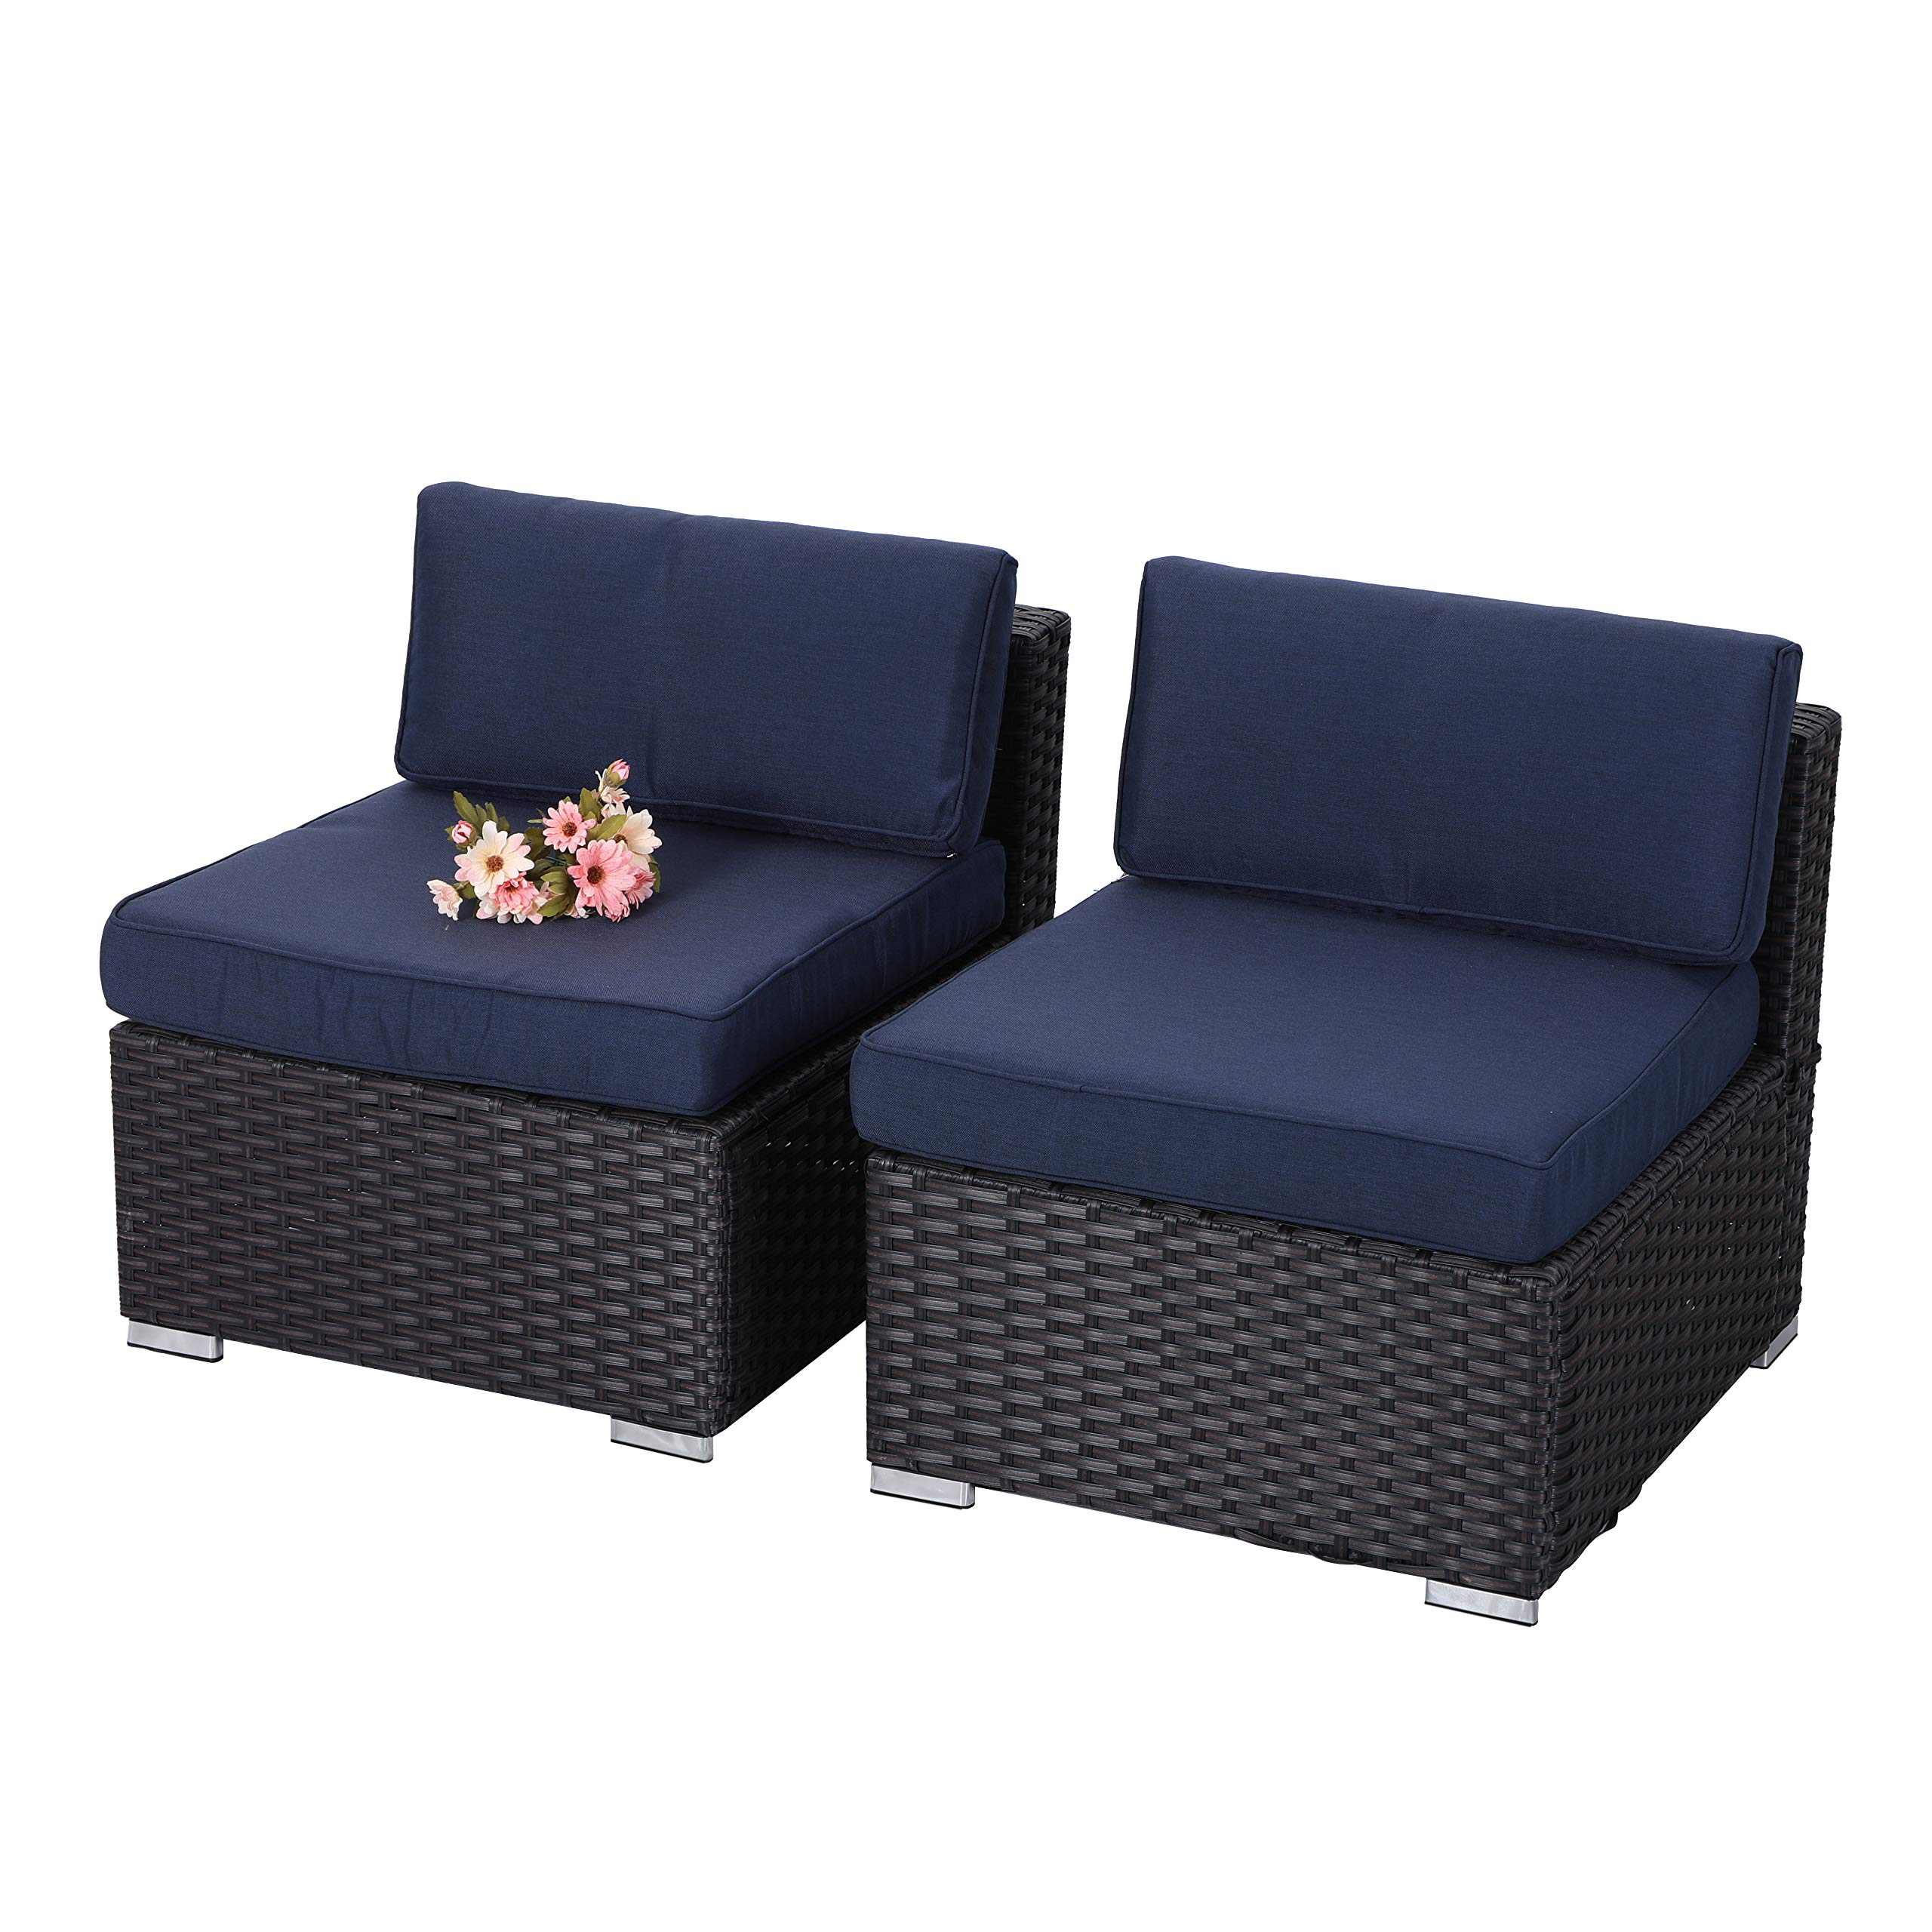 PHI VILLA 2-Piece Patio Furniture Set Rattan Sectional Sofa with Seat Cushions, Blue by PHI VILLA